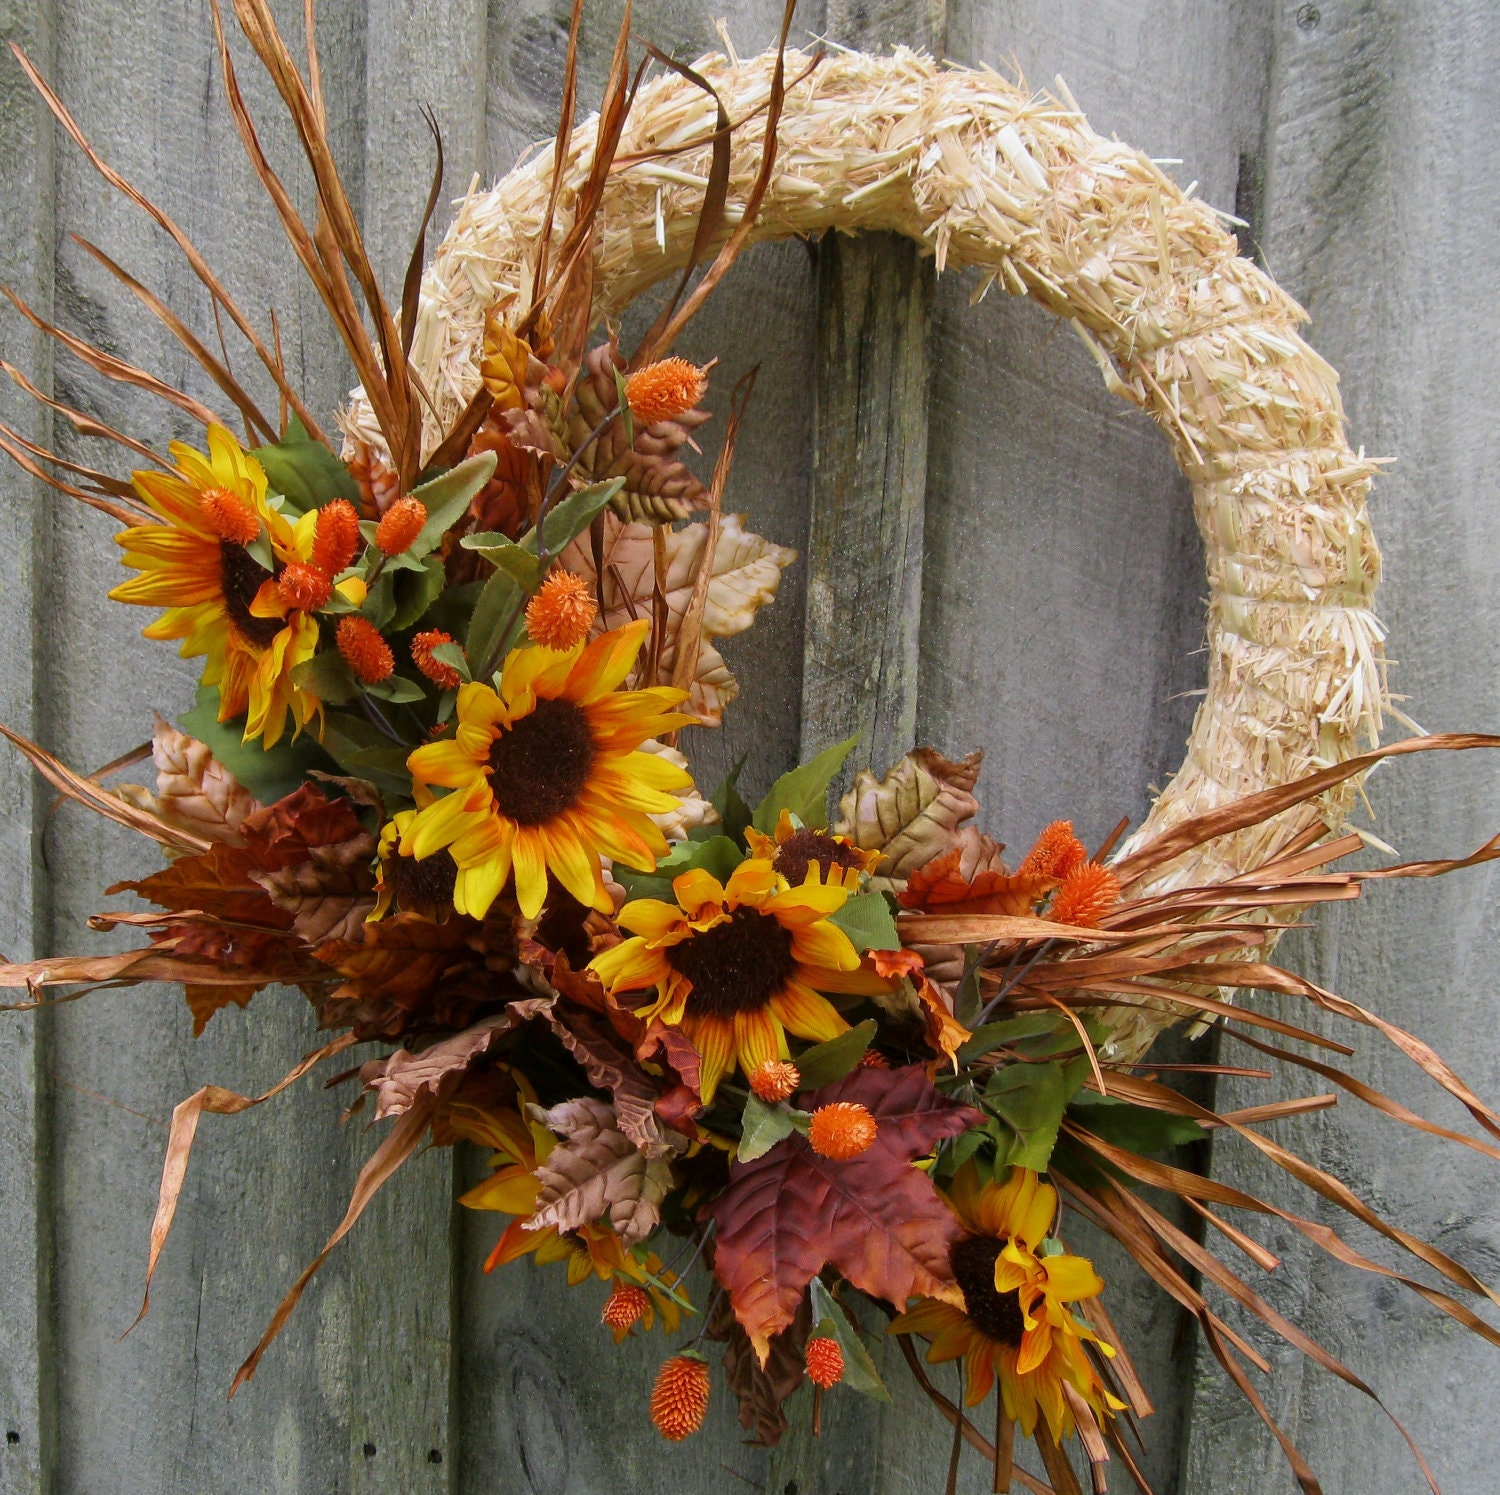 Sale Wreath Fall Wreaths Autumn Straw Wreath Sunflowers